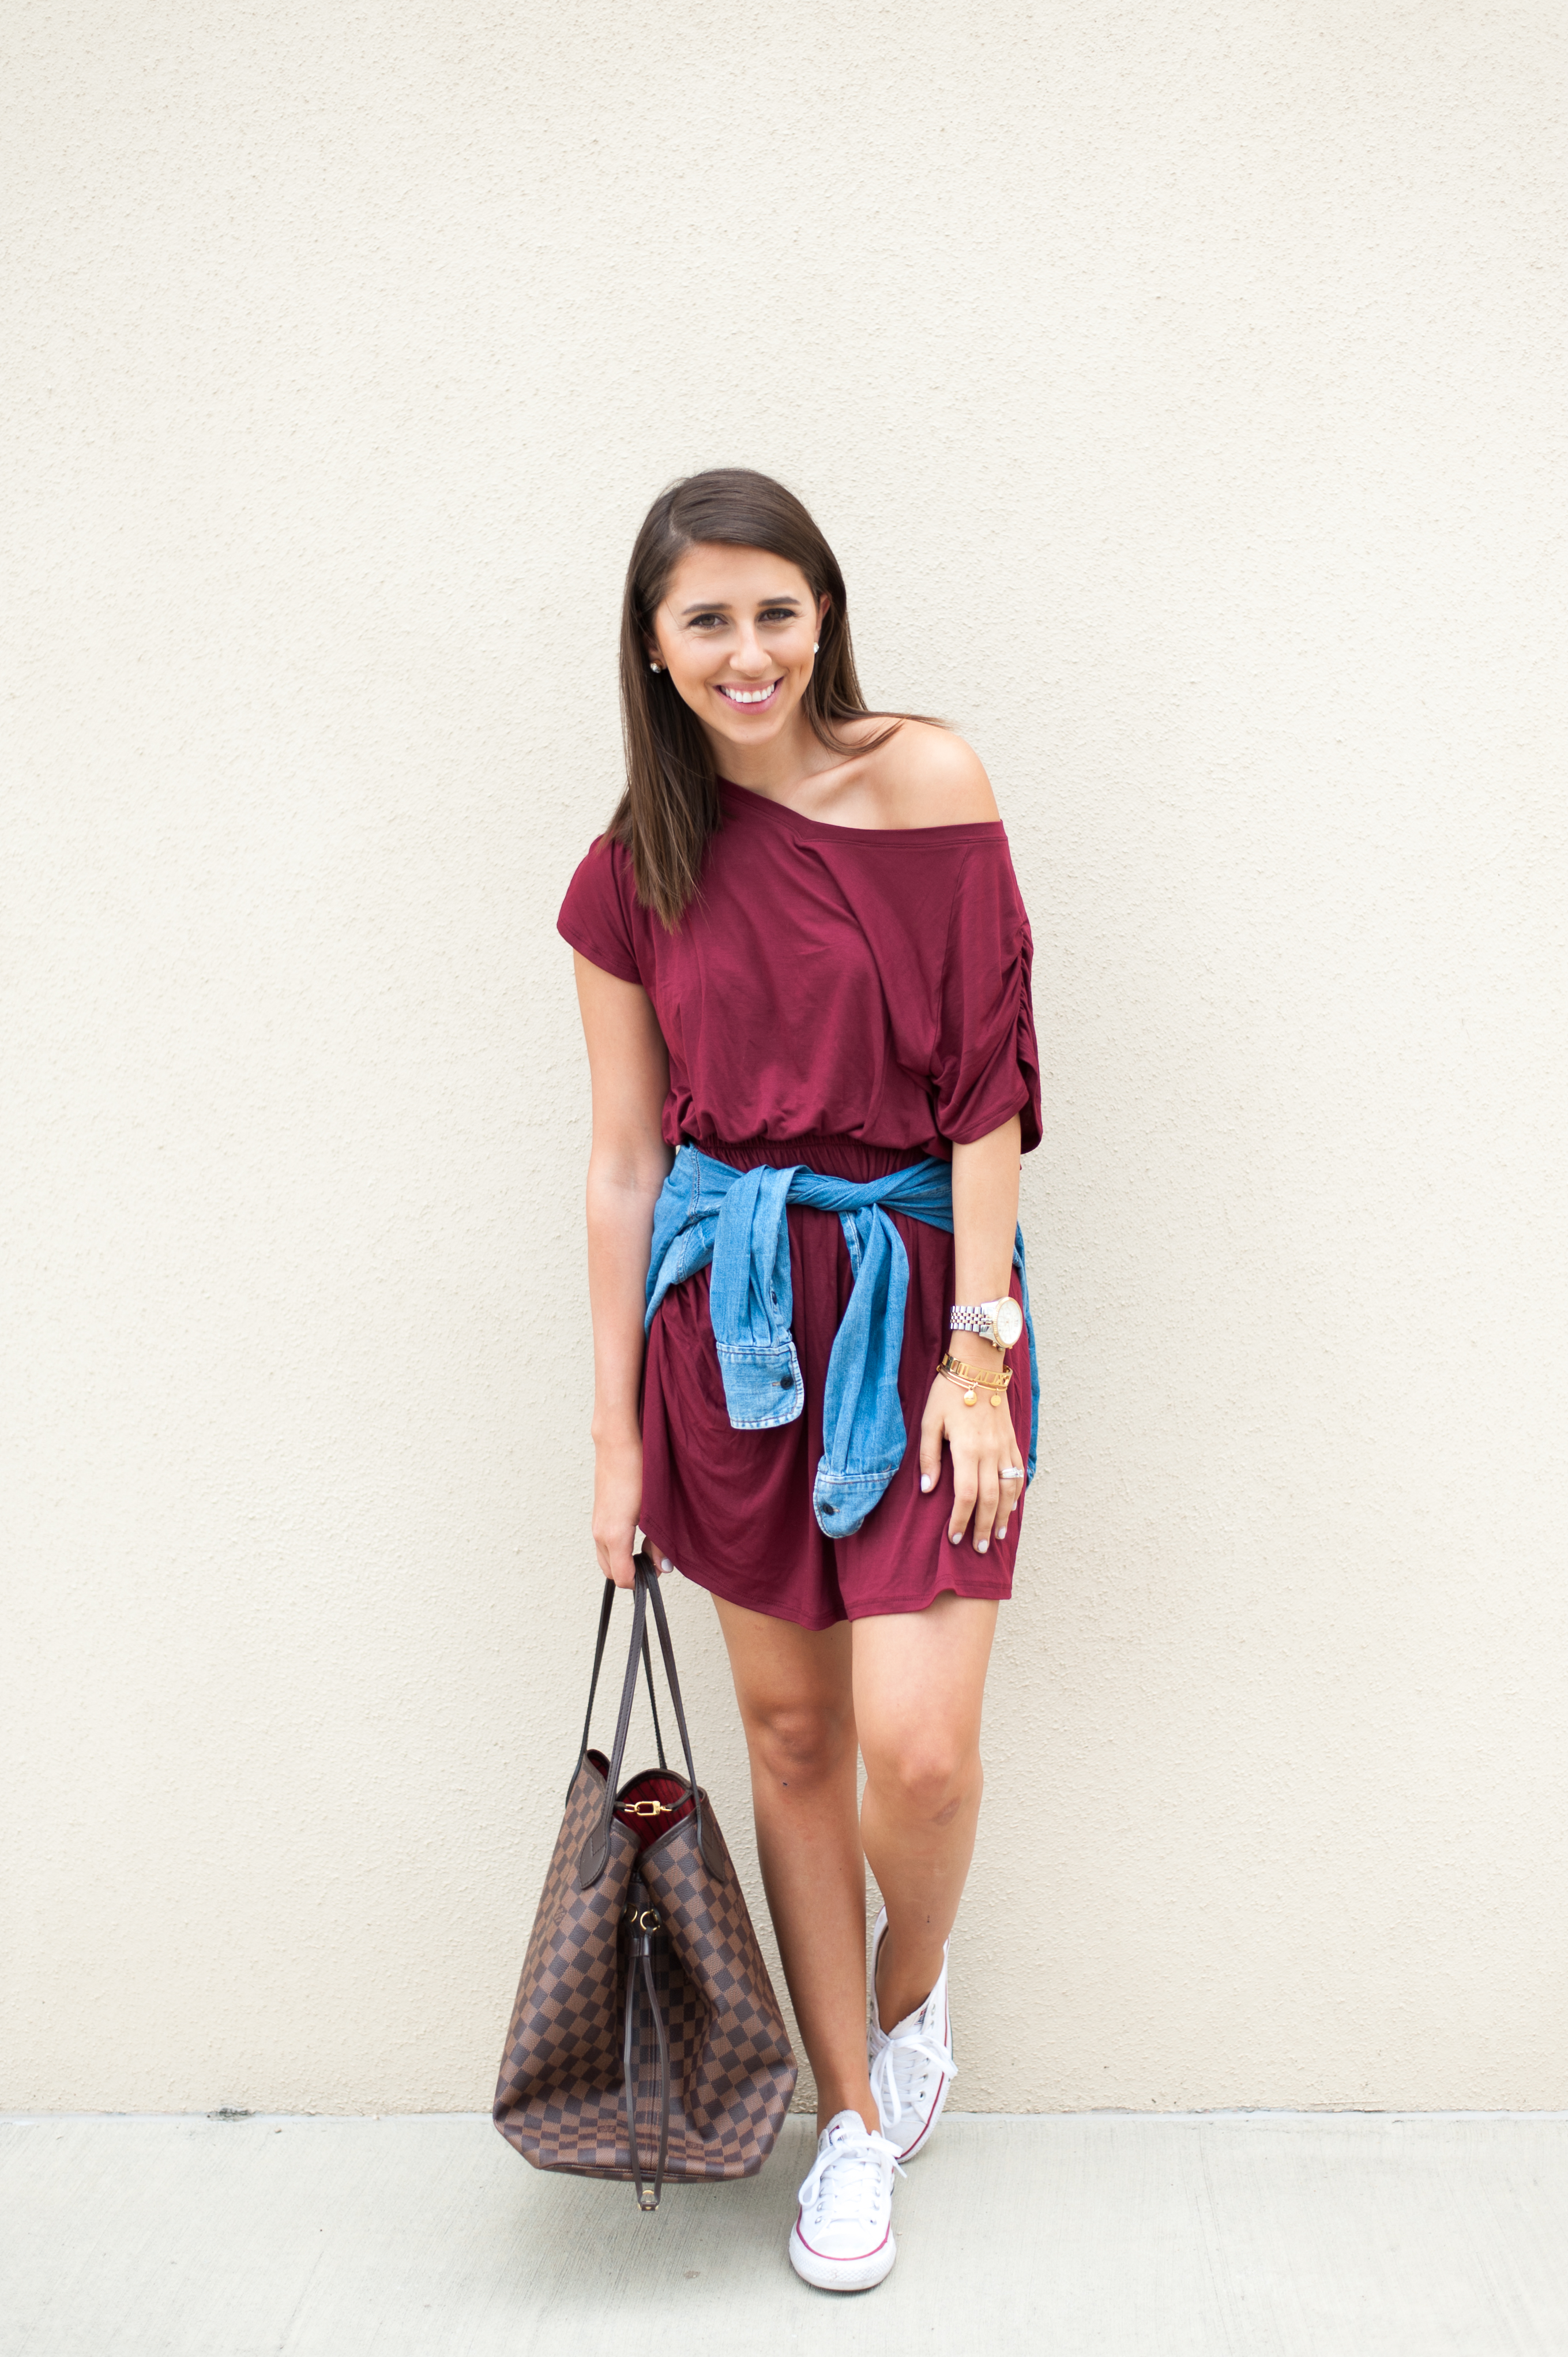 Dress Up Buttercup // A Houston-based fashion and inspiration blog developed to daily inspire your own personal style by Dede Raad | Merlot Swing Dress